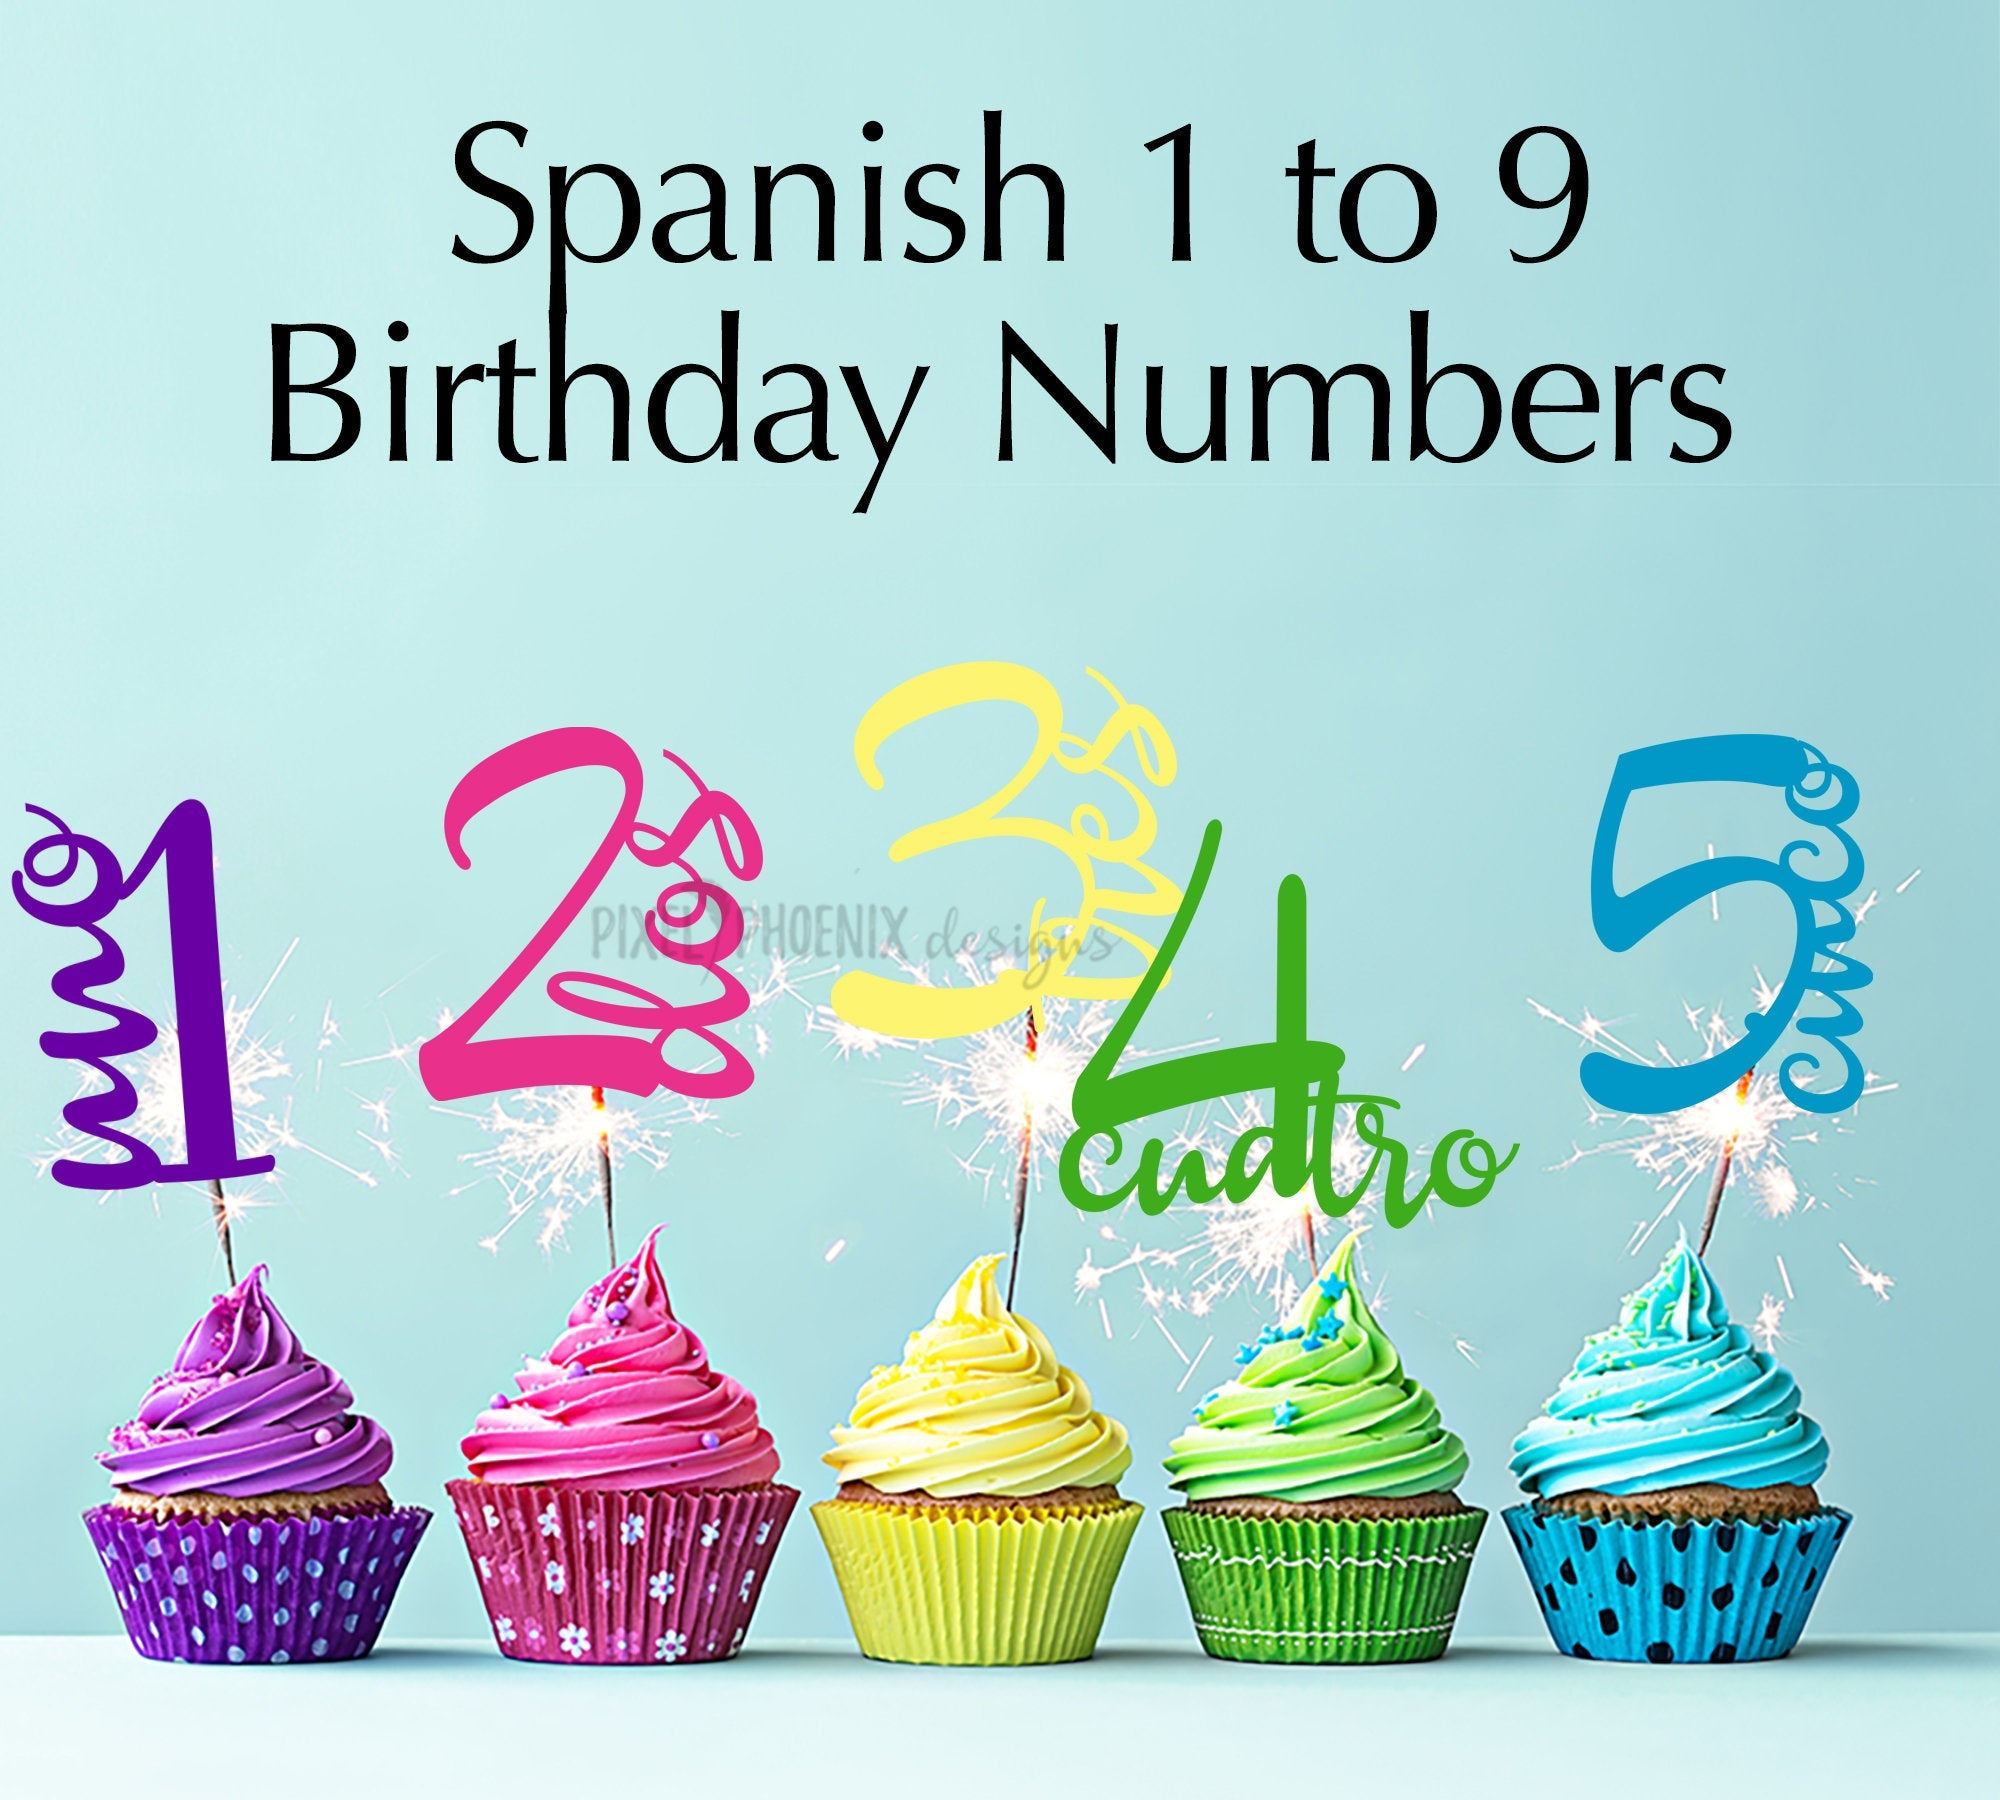 Spanish cake topper, birthday numbers svg, svg cut file, cake topper SVG, child's birthday svg, Birthday cut file, birthday age